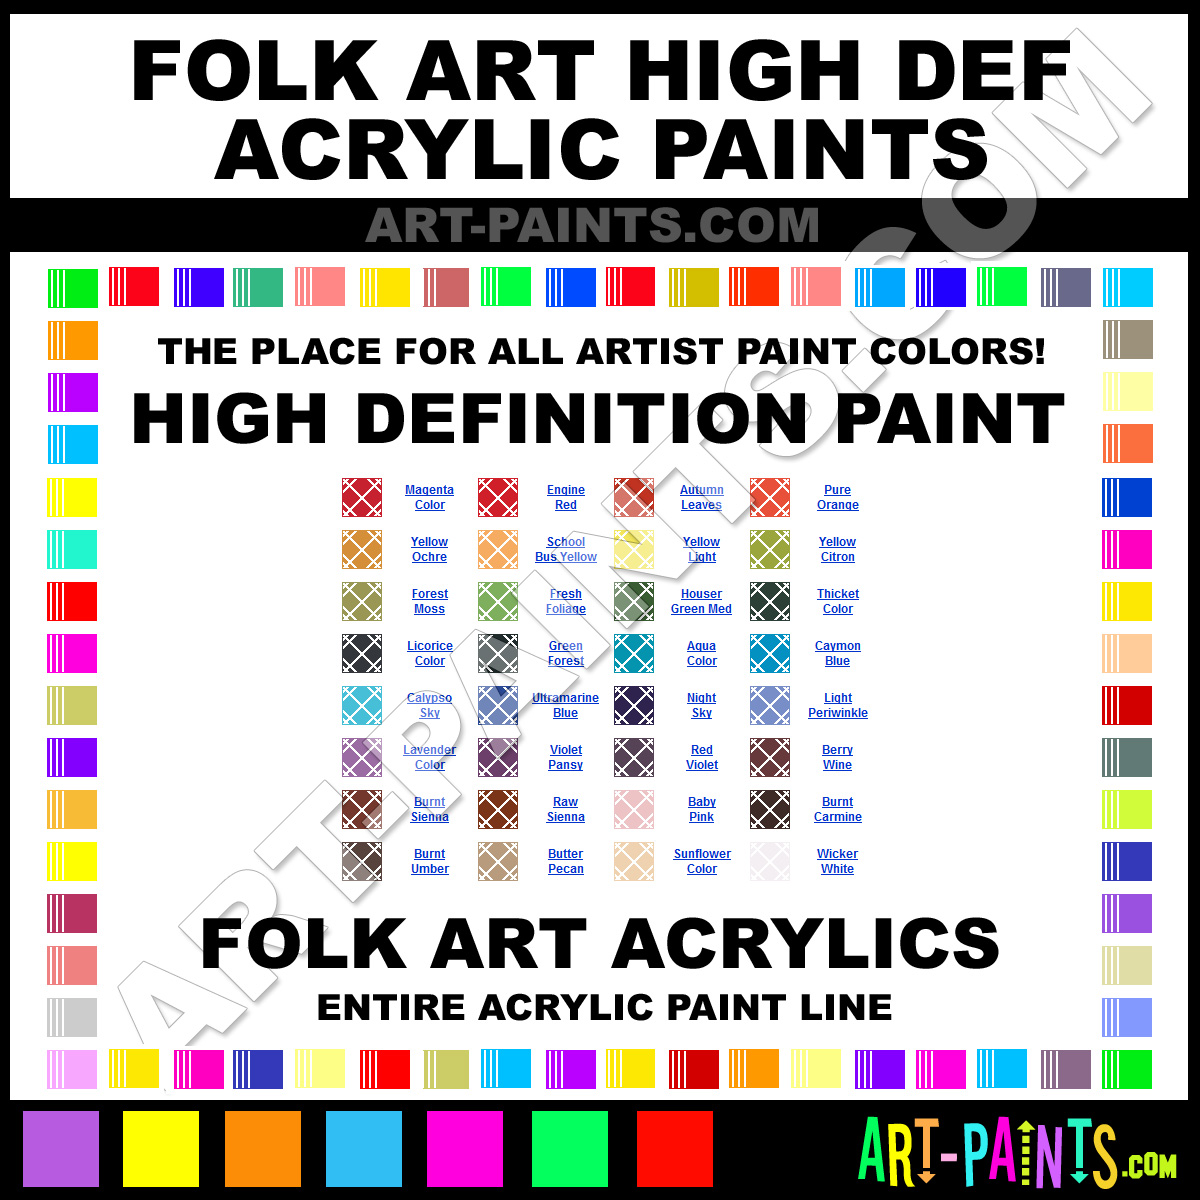 Folk art acrylic paint color chart - Light Periwinkle Paint 4527 By Folk Art High Definition Paints